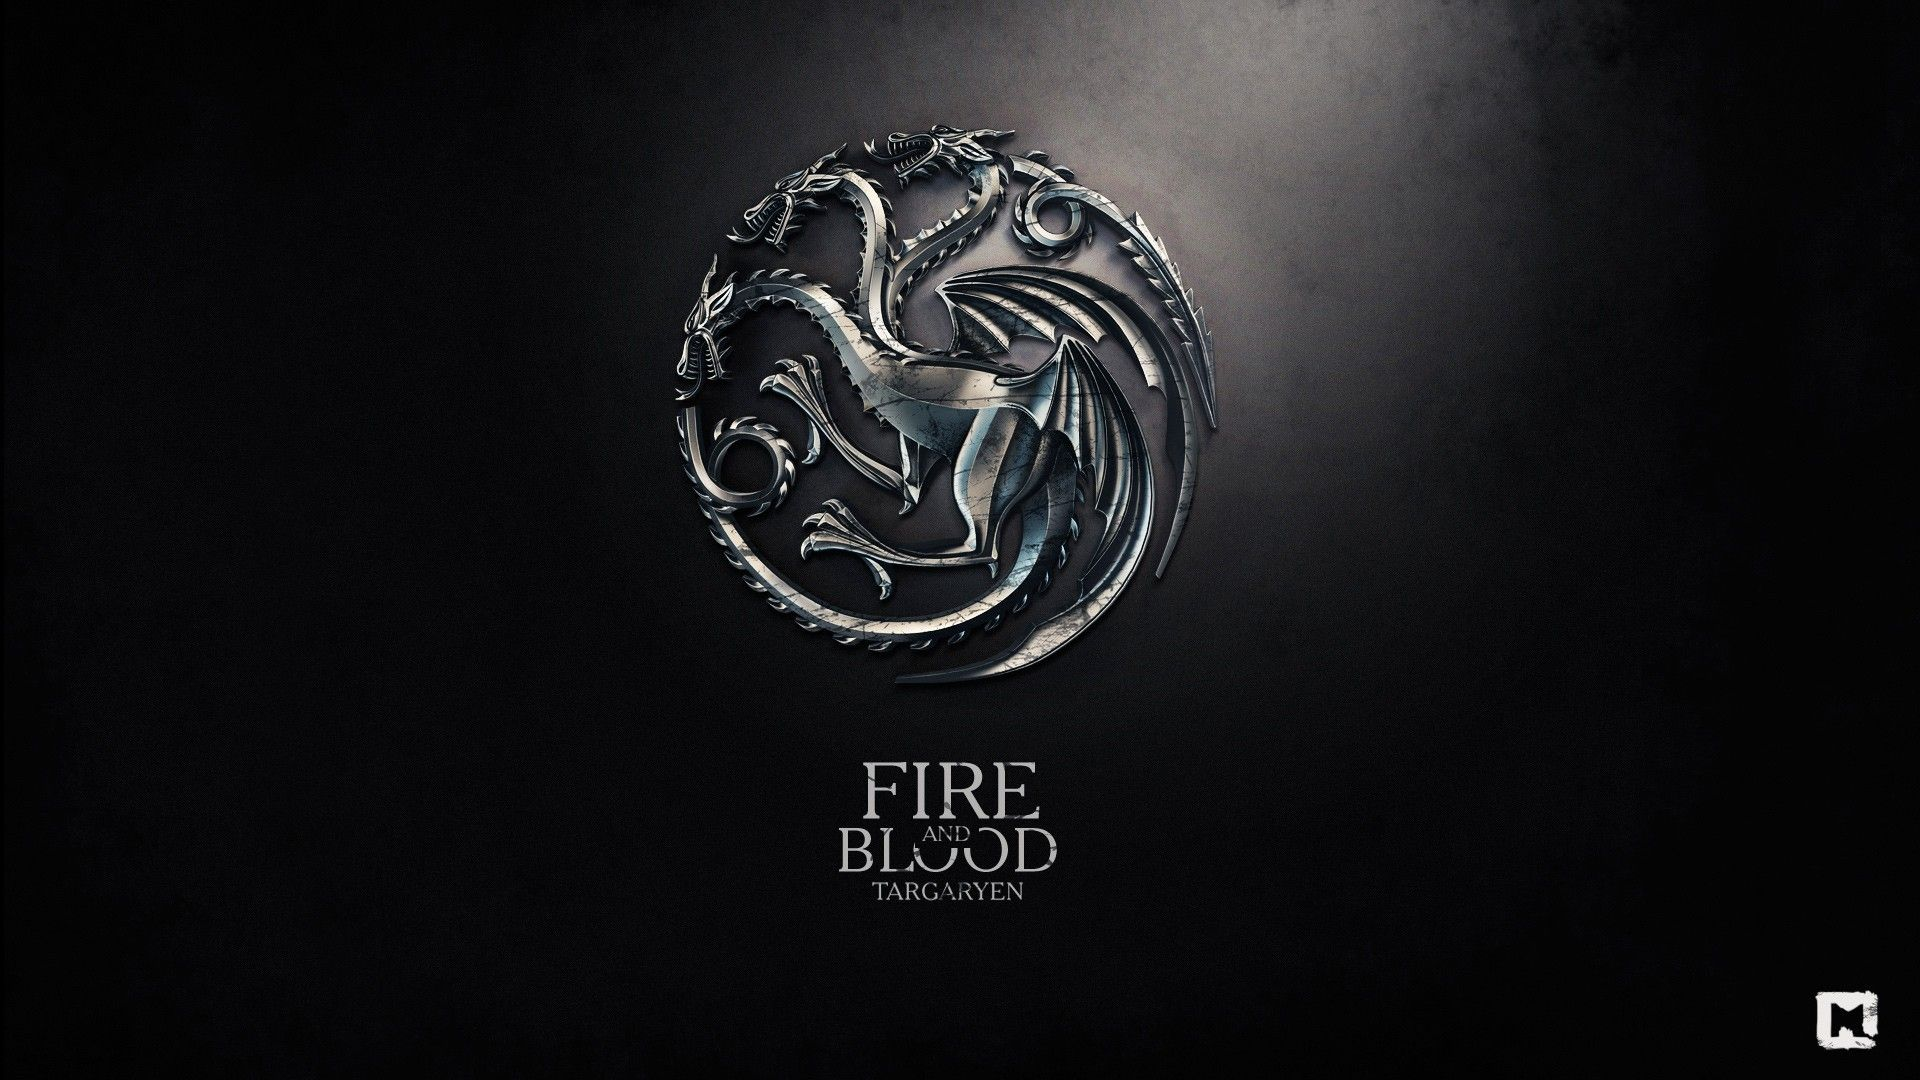 wallpaper of the day imma geek game of thrones images game of